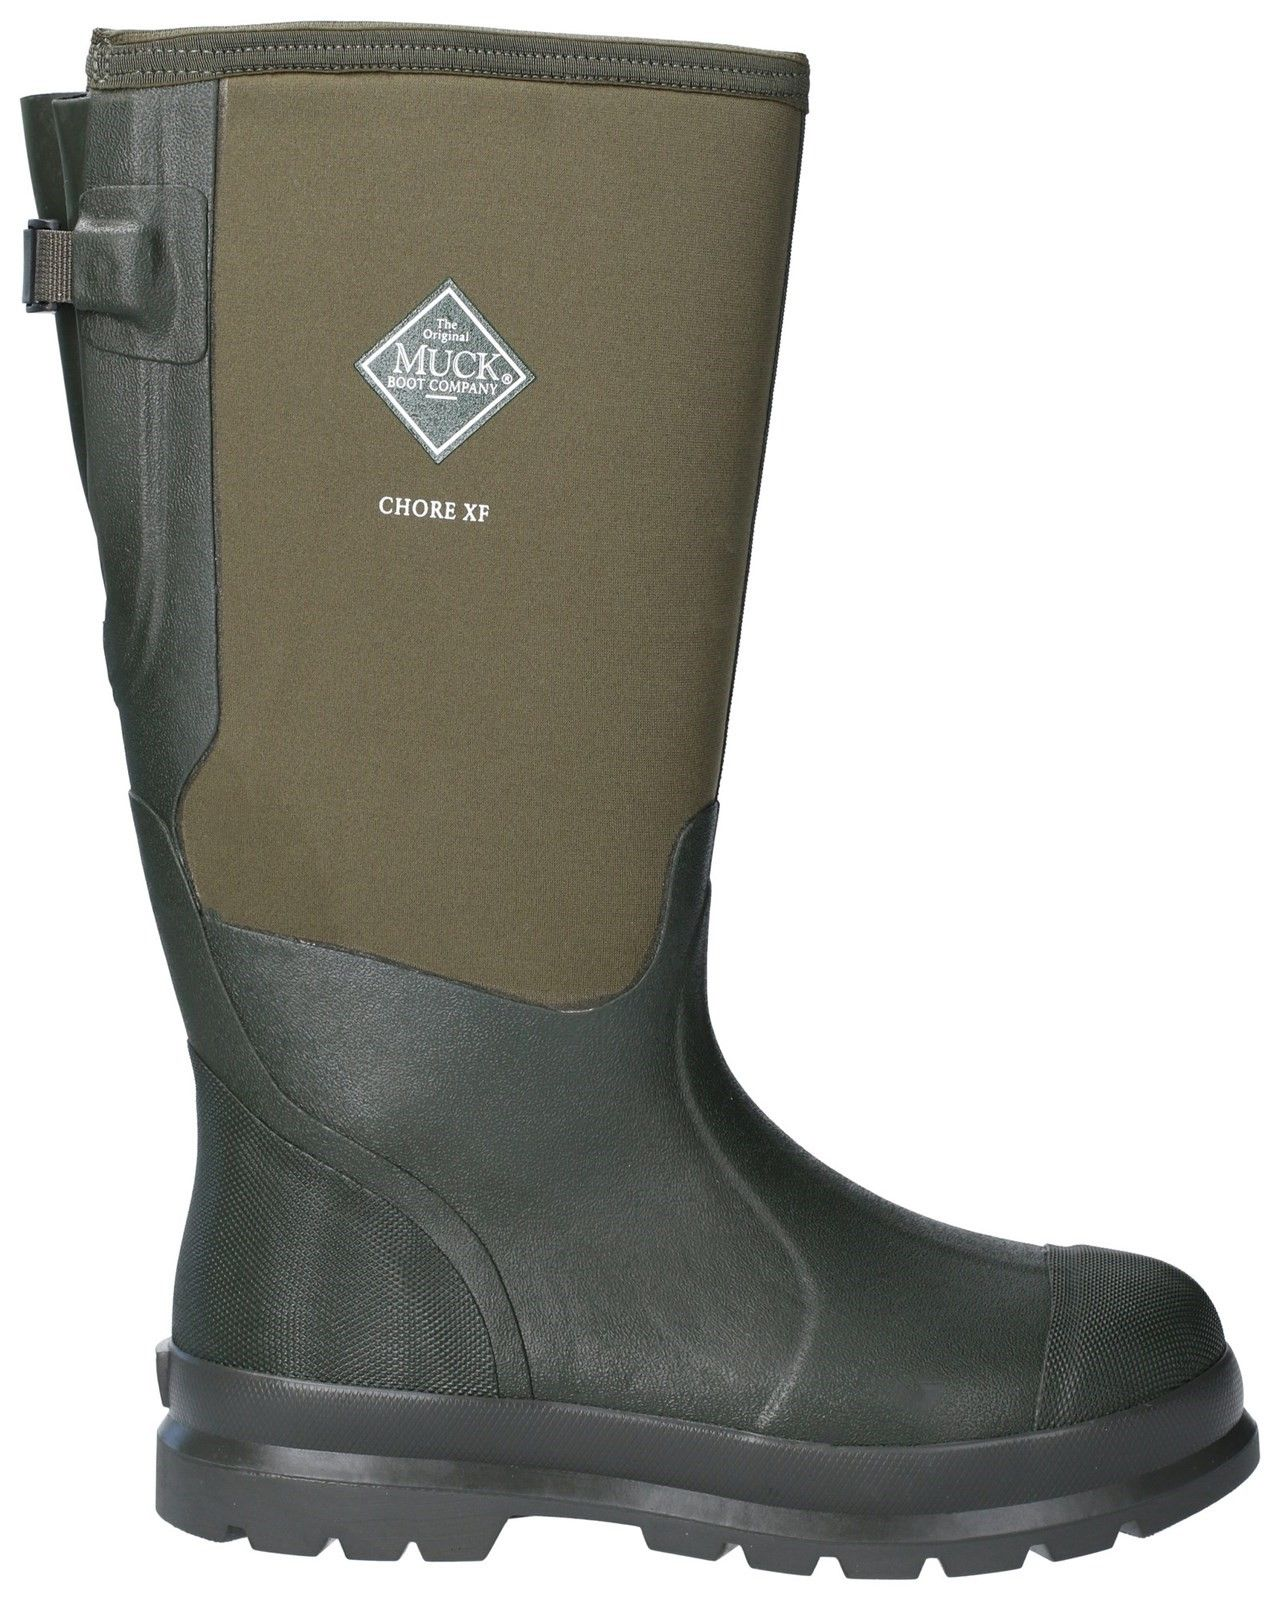 Chore XF Gusset Classic Work Boot